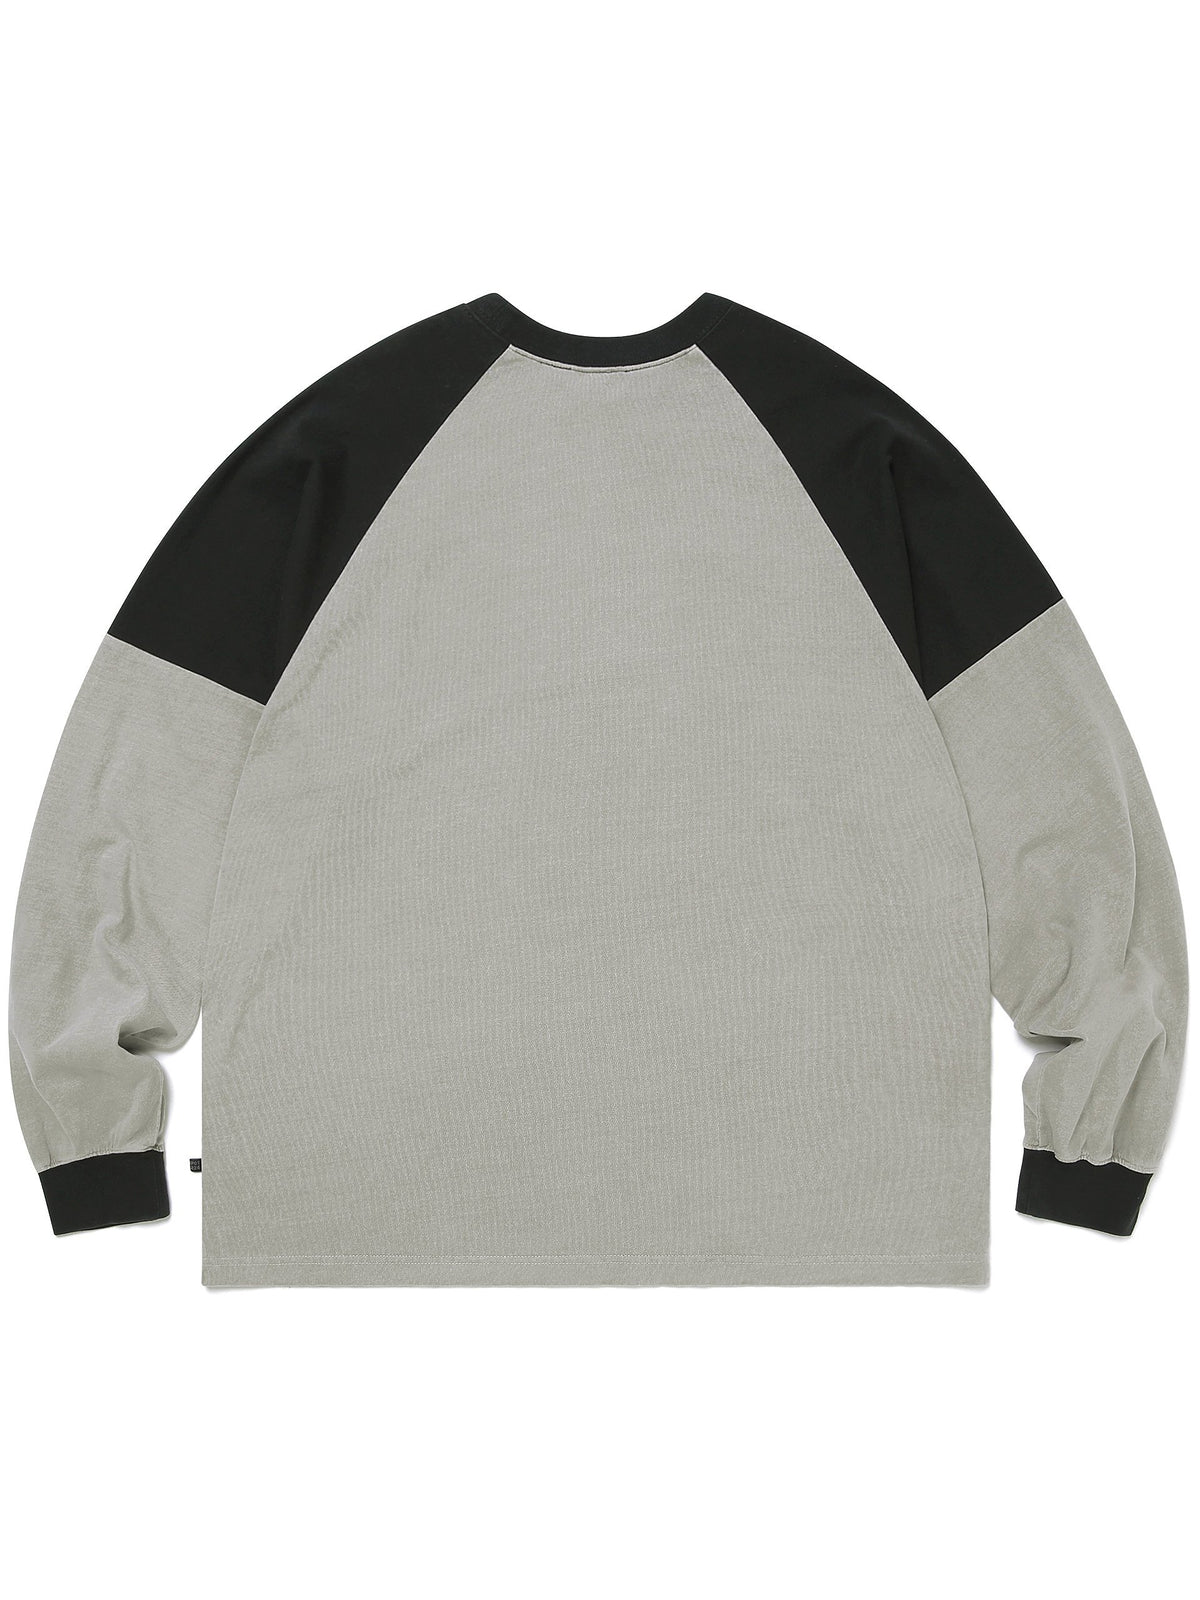 Overdyed Raglan L/SL Top - thisisneverthat